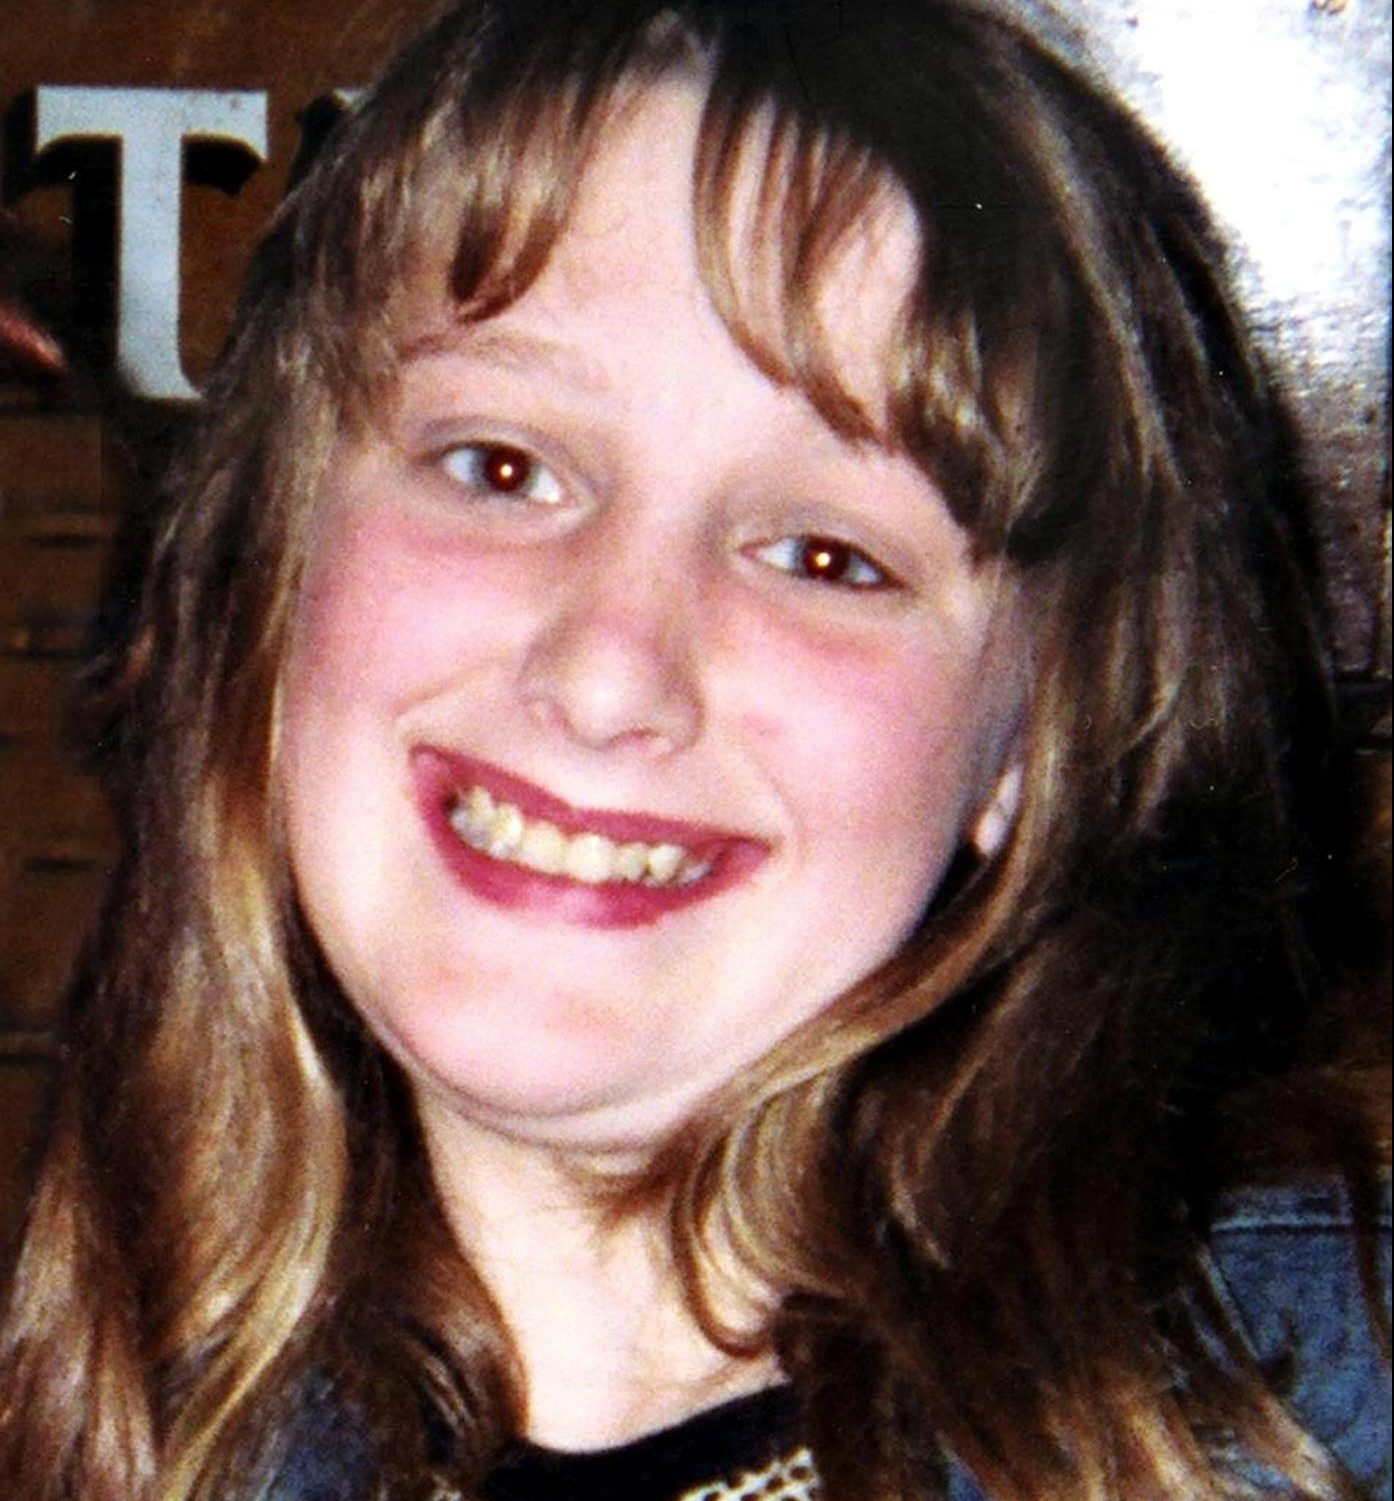 Undated handout photo from Lancashire Police of Charlene Downes, the 14-year-old who disappeared in November 2003. Lancashire Police arrested two men, aged 28 and 49, Tuesday March 7 2006, on suspicion of her murder. Charlene left home to visit Blackpool pier with friends on November 1 2003, and has not been seen since. See PA Story POLICE Girl. PRESS ASSOCIATION Photo. Photo credit should read: Lancashire Police/PA.